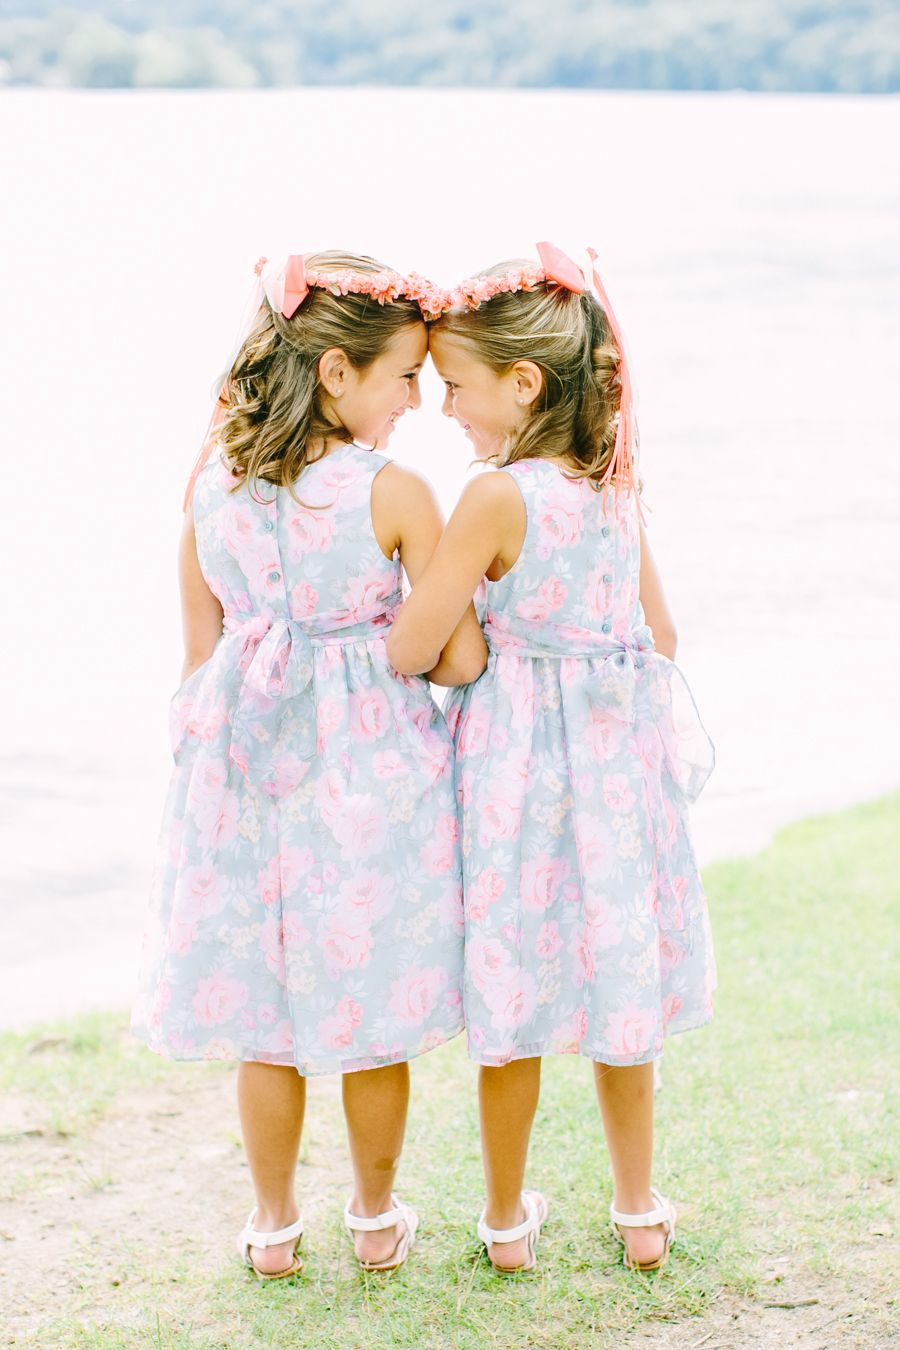 The flower girls will look dreamy in these rose quartz and serenity colored dresses.